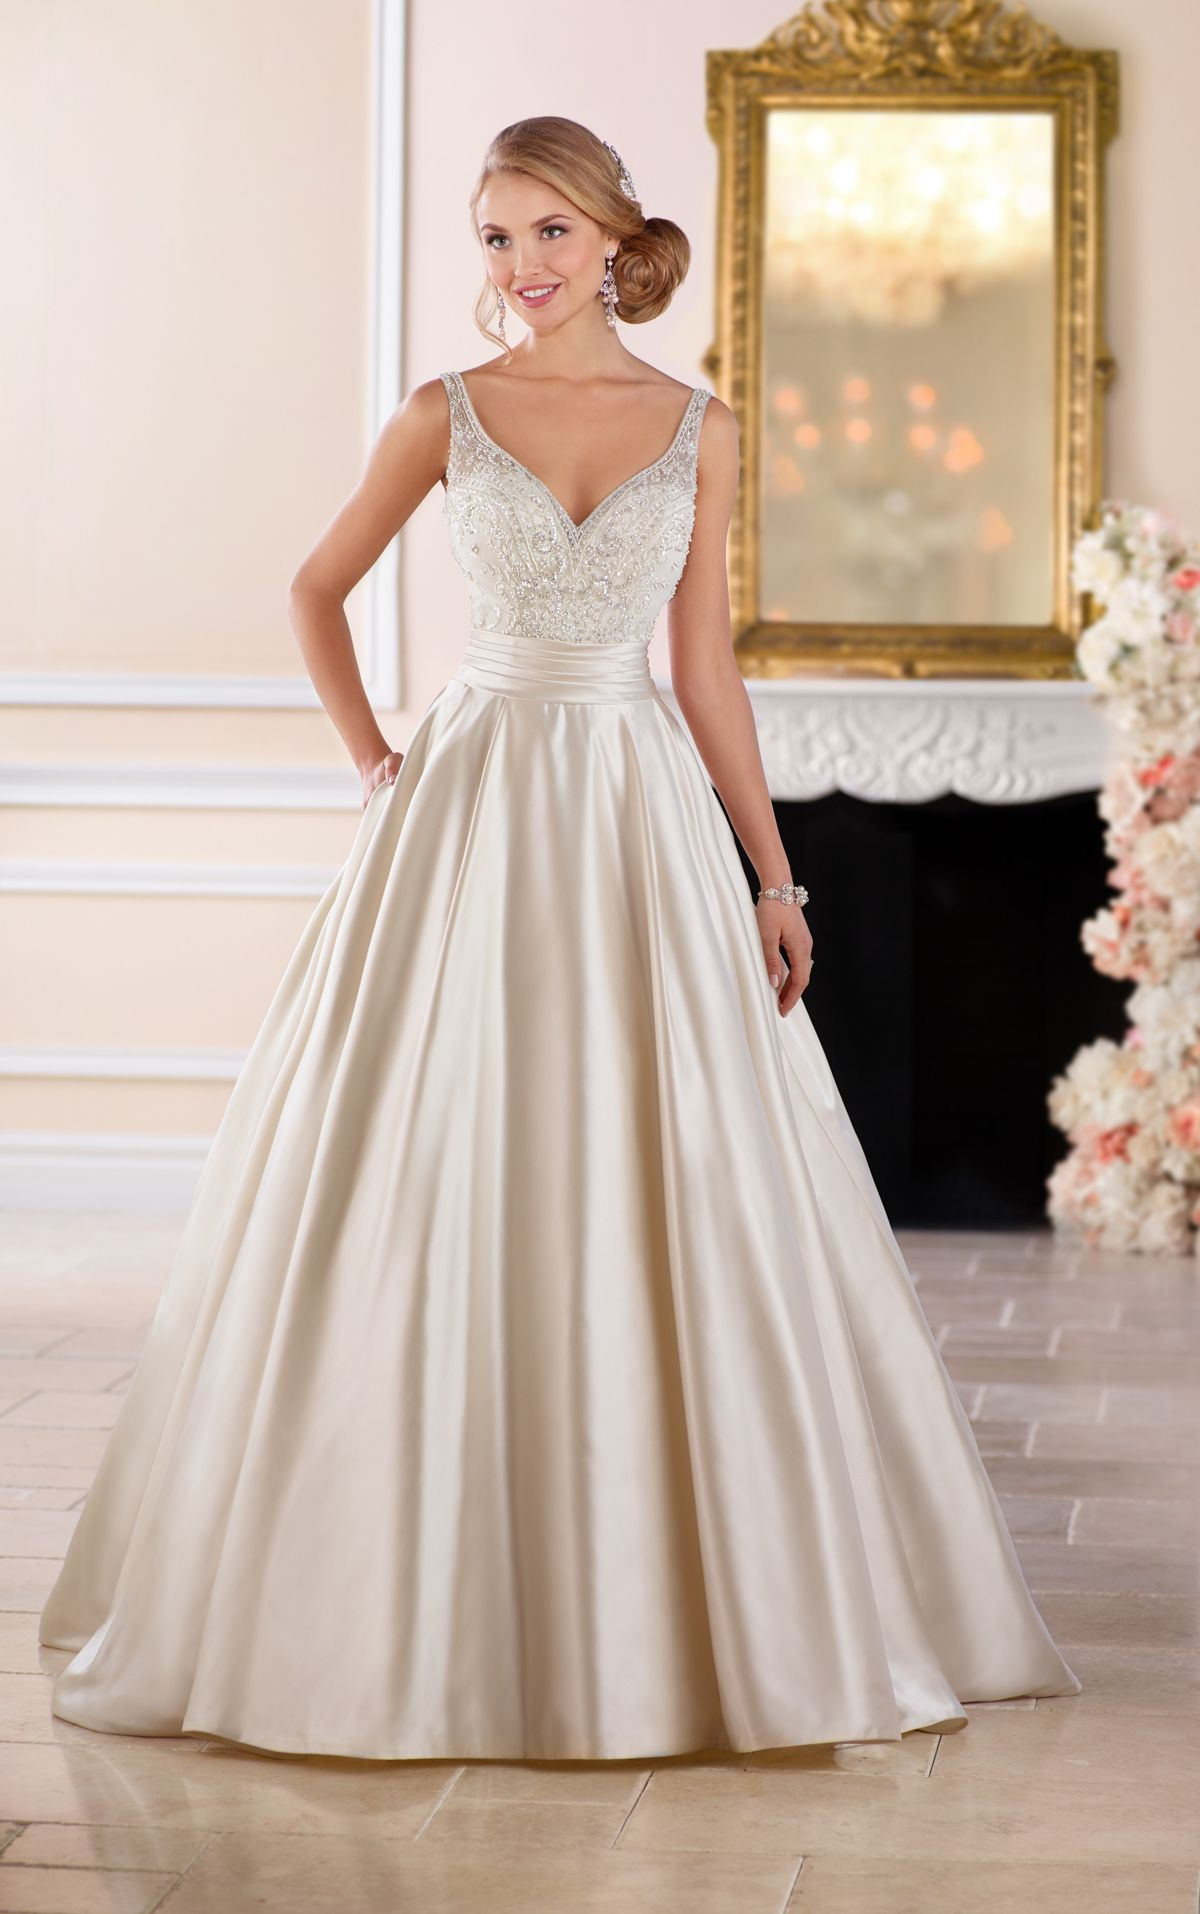 Wedding dresses stella york satin sash and fabric covered button this ball gown with sash wedding dress from stella york is full romance dolce satin ombrellifo Choice Image